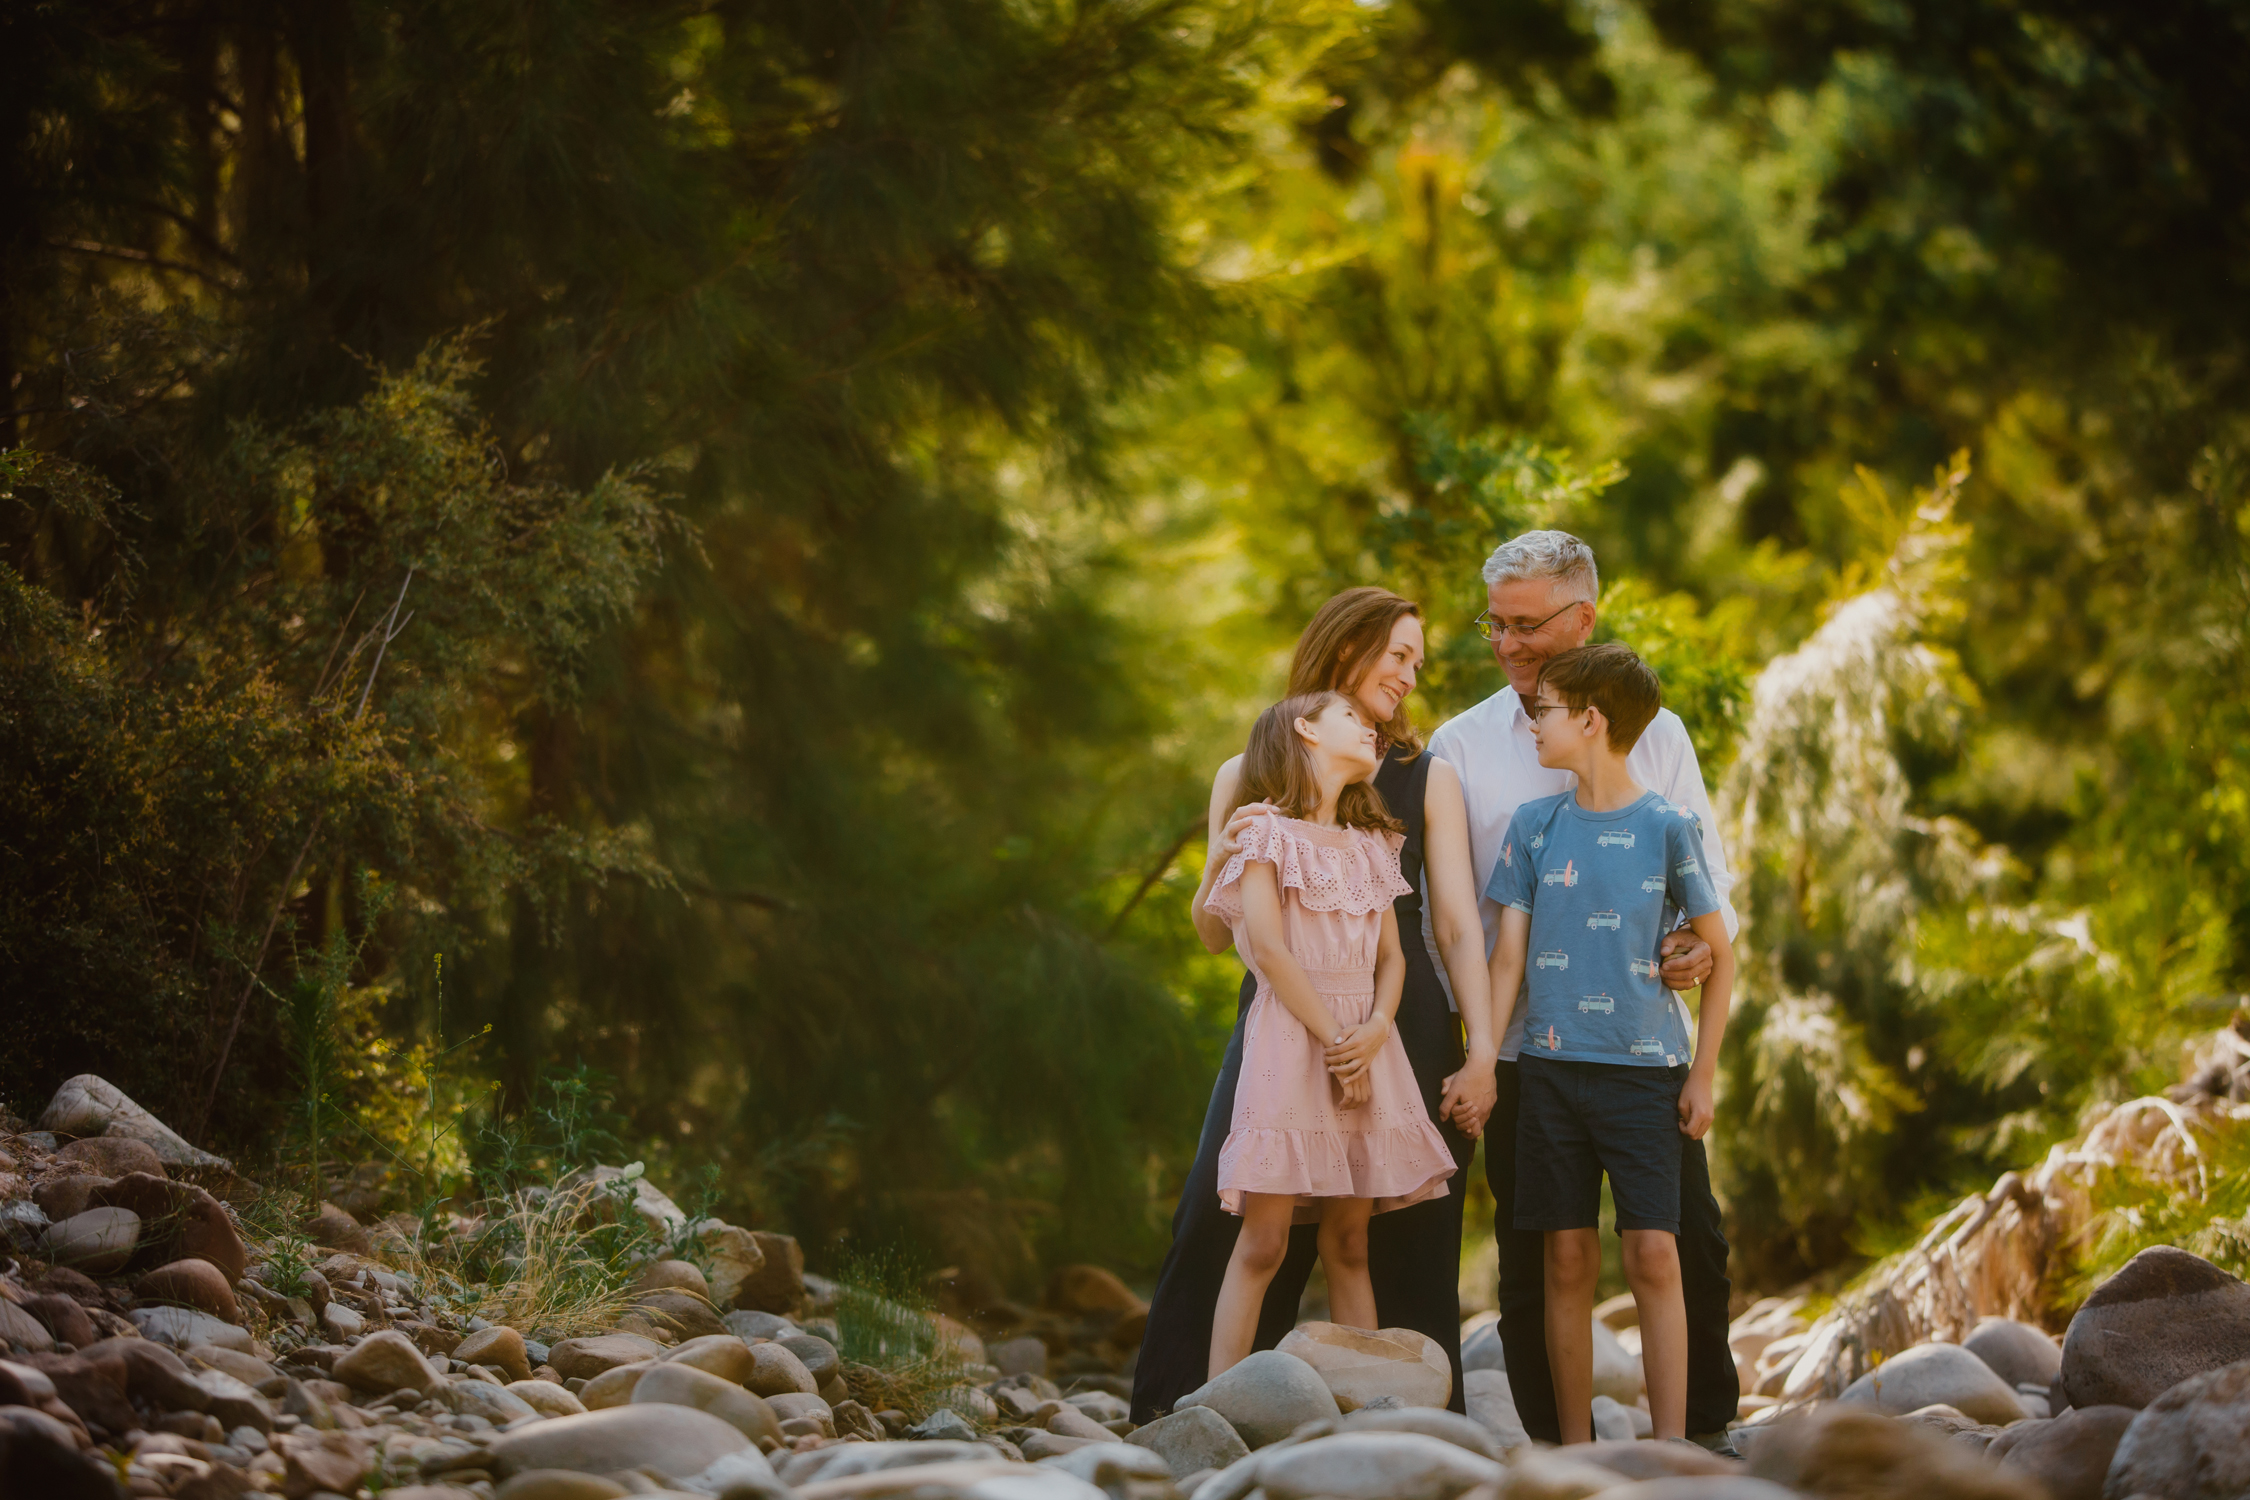 5 Questions to Ask a Potential Family Photographer